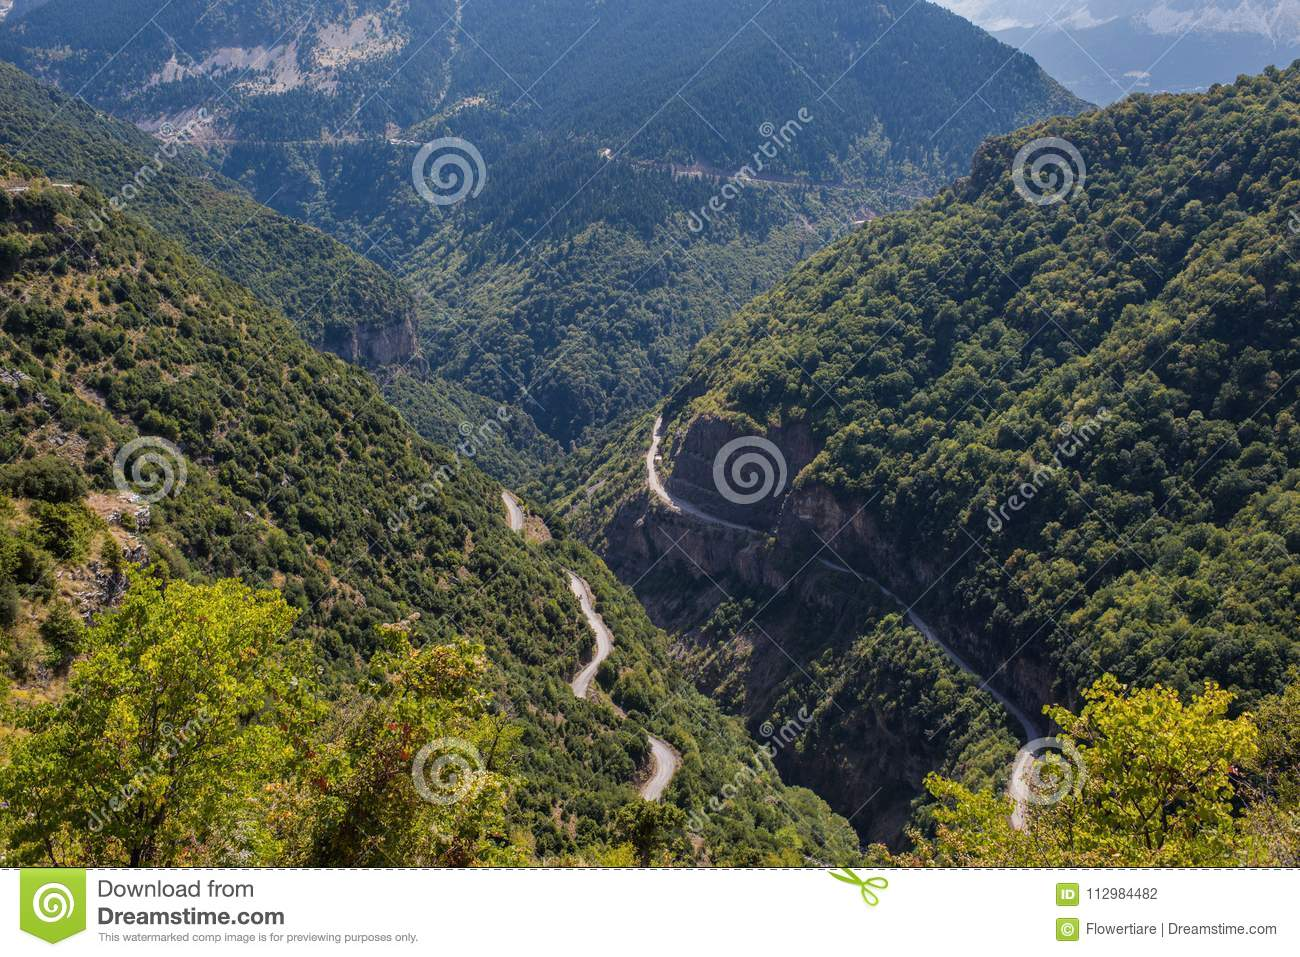 Two roads in the mountain in National Park of Tzoumerka, Greece Epirus region. Mountain in the clouds